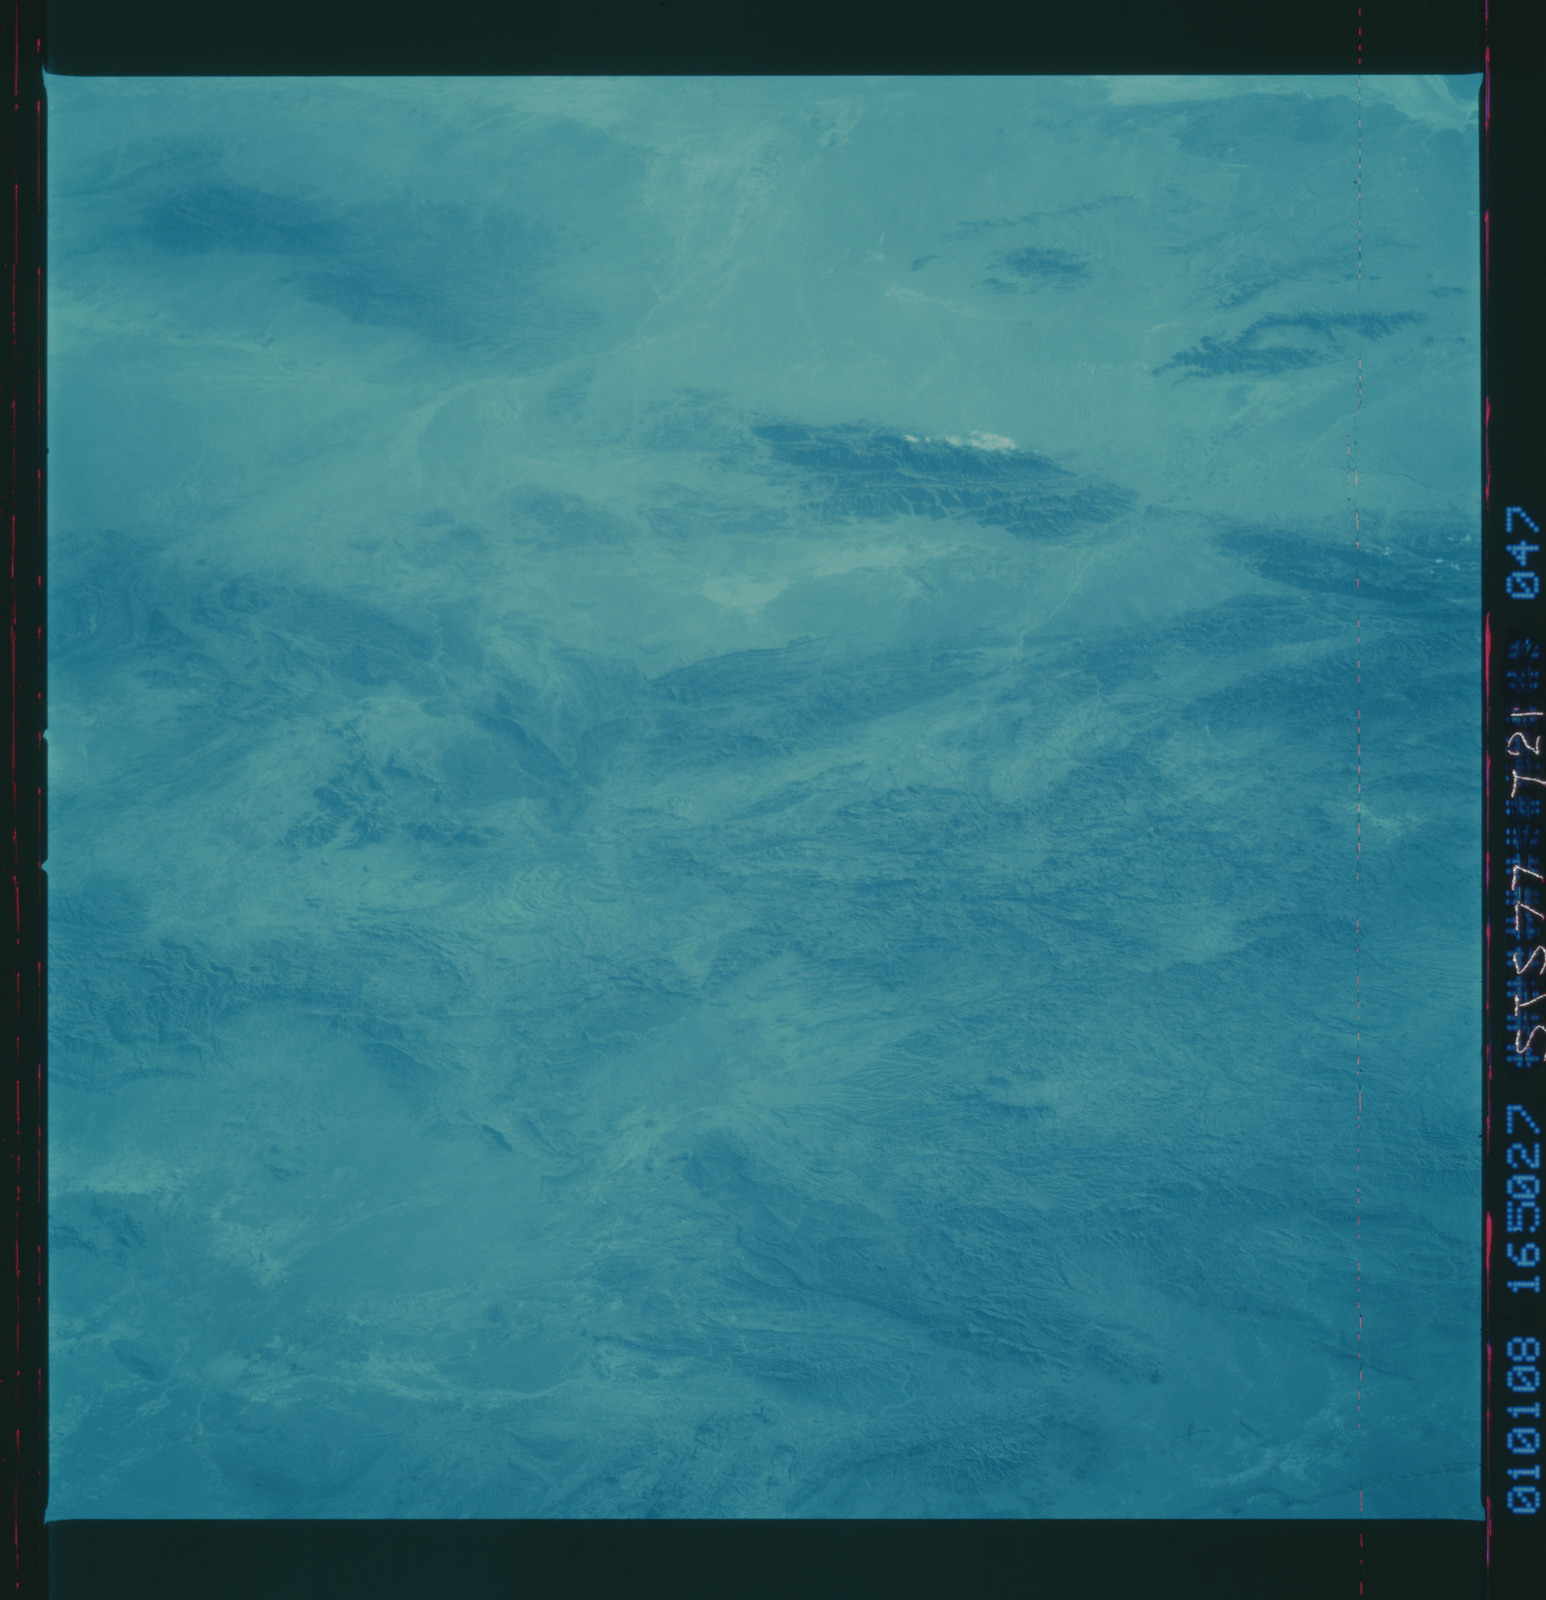 STS077-721-047 - STS-077 - Color infra-red Earth observations taken during STS-77 mission